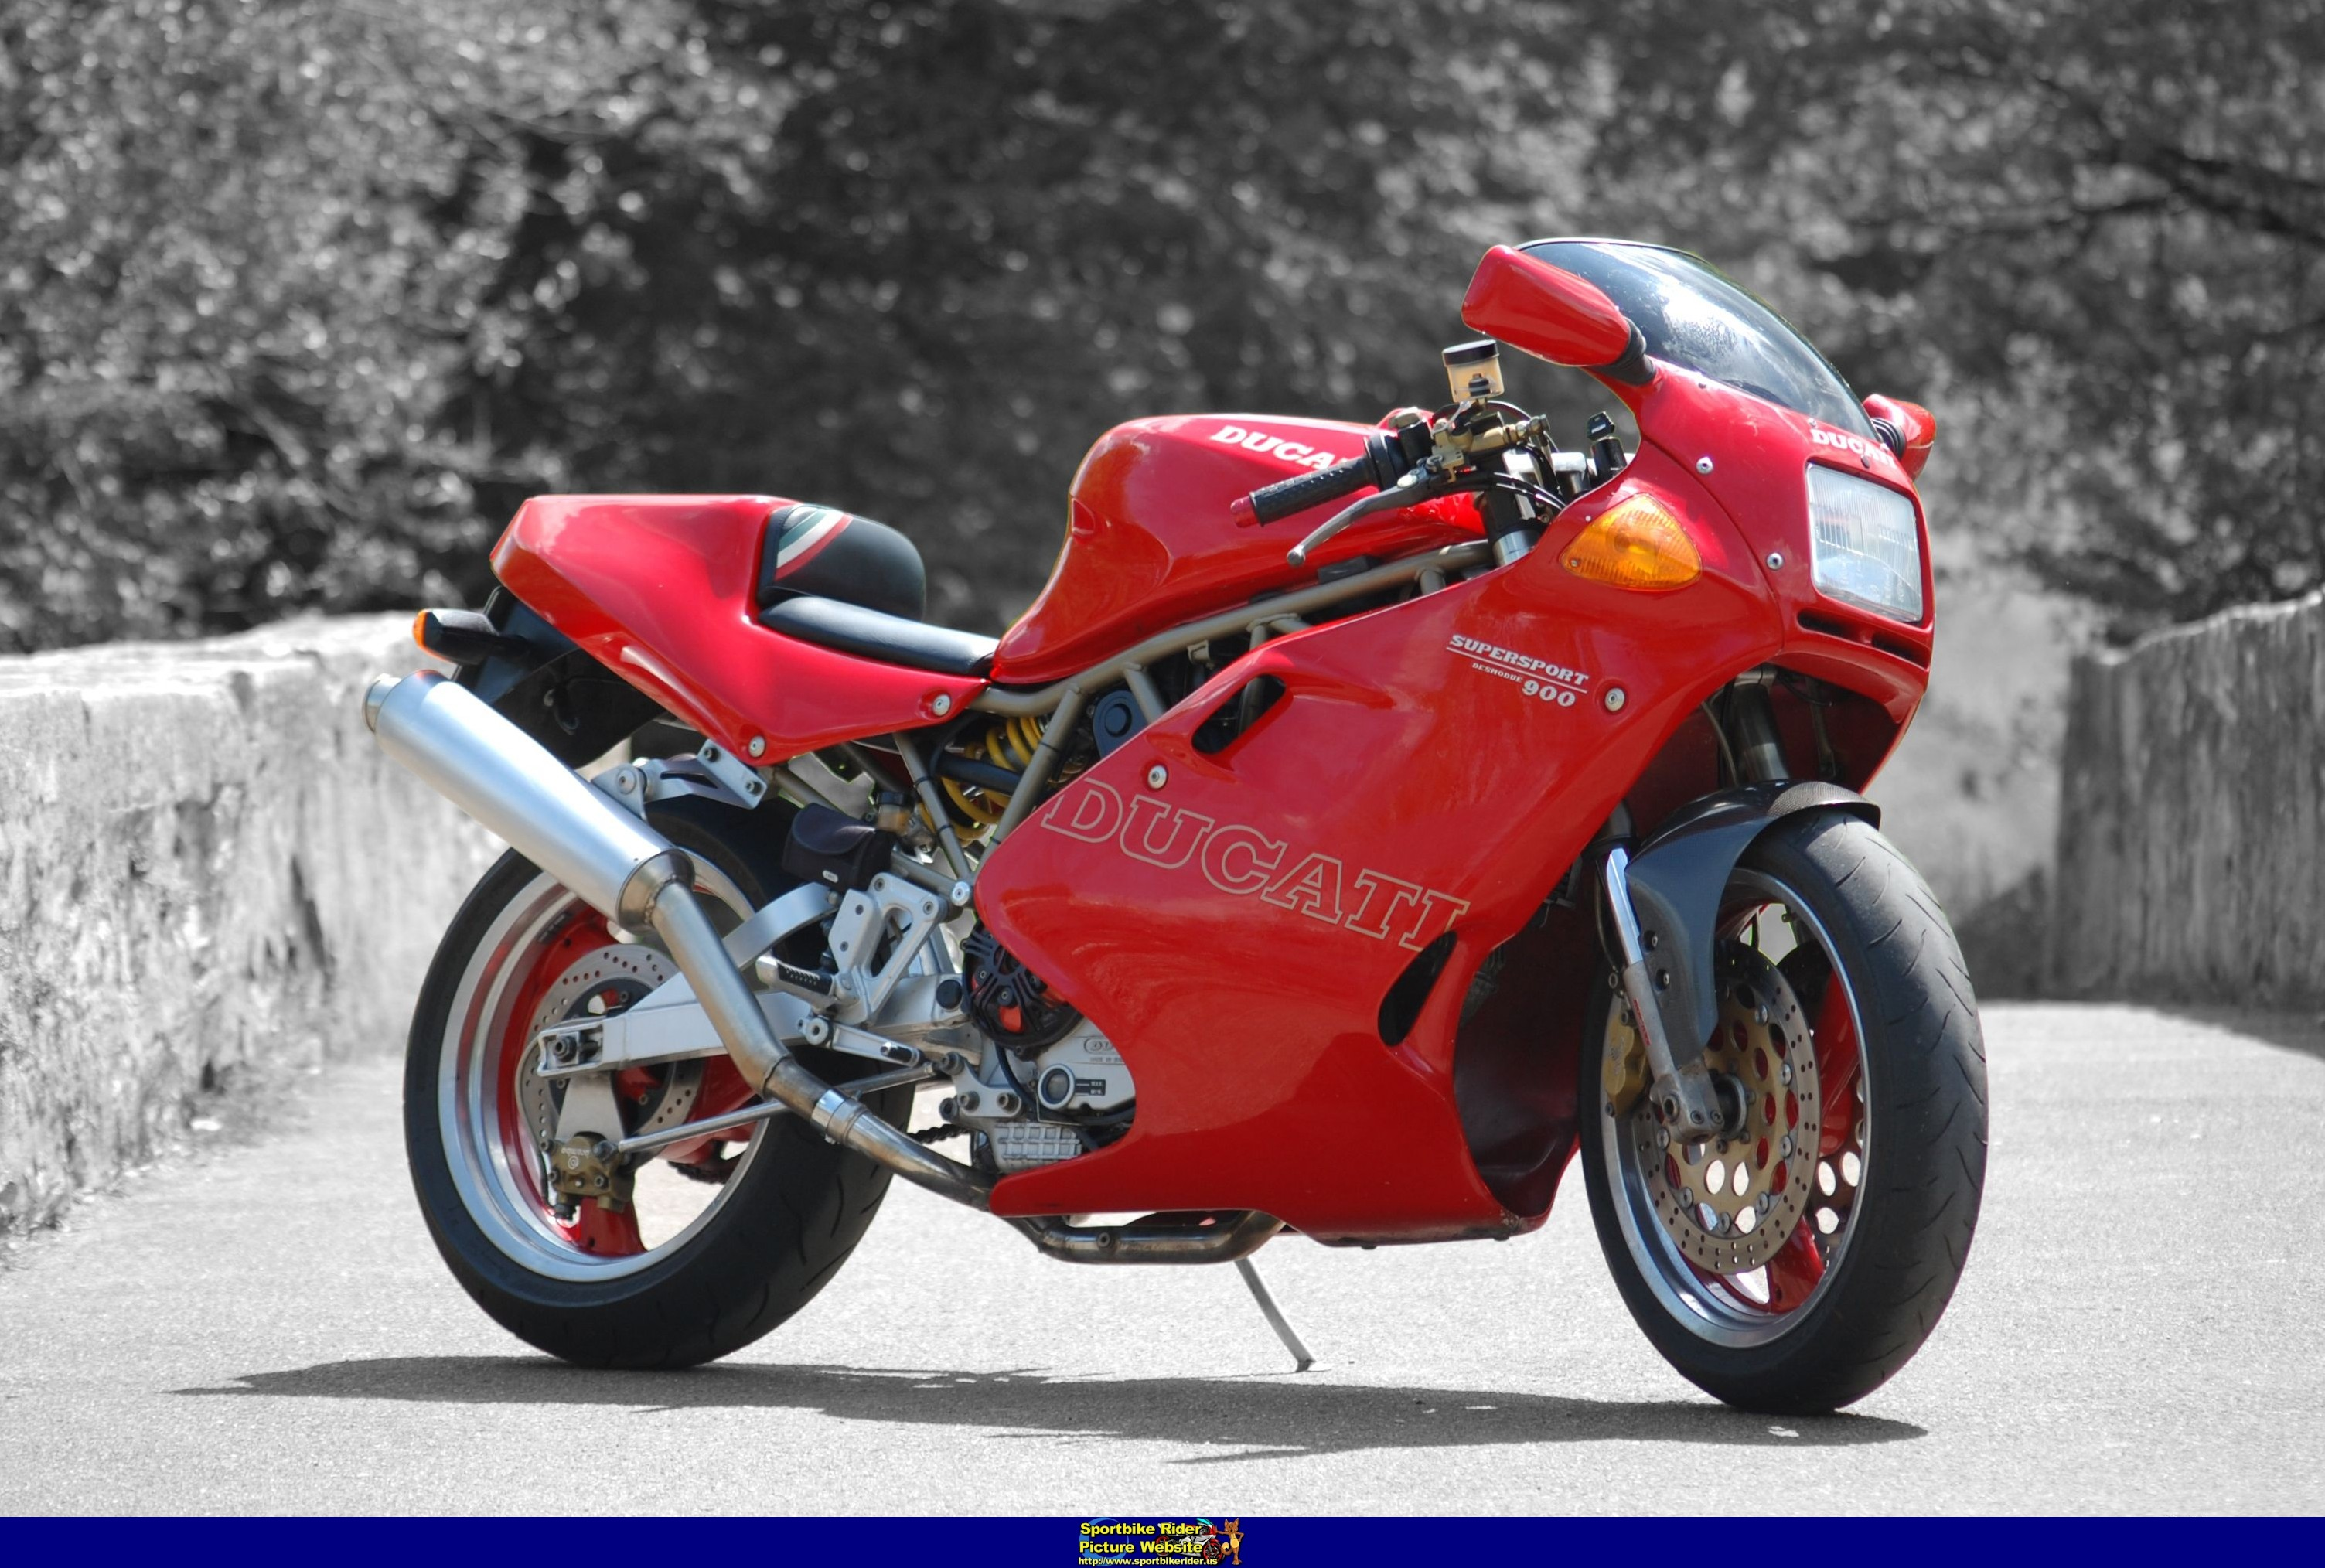 Ducati 900 SS 1997 images #79023